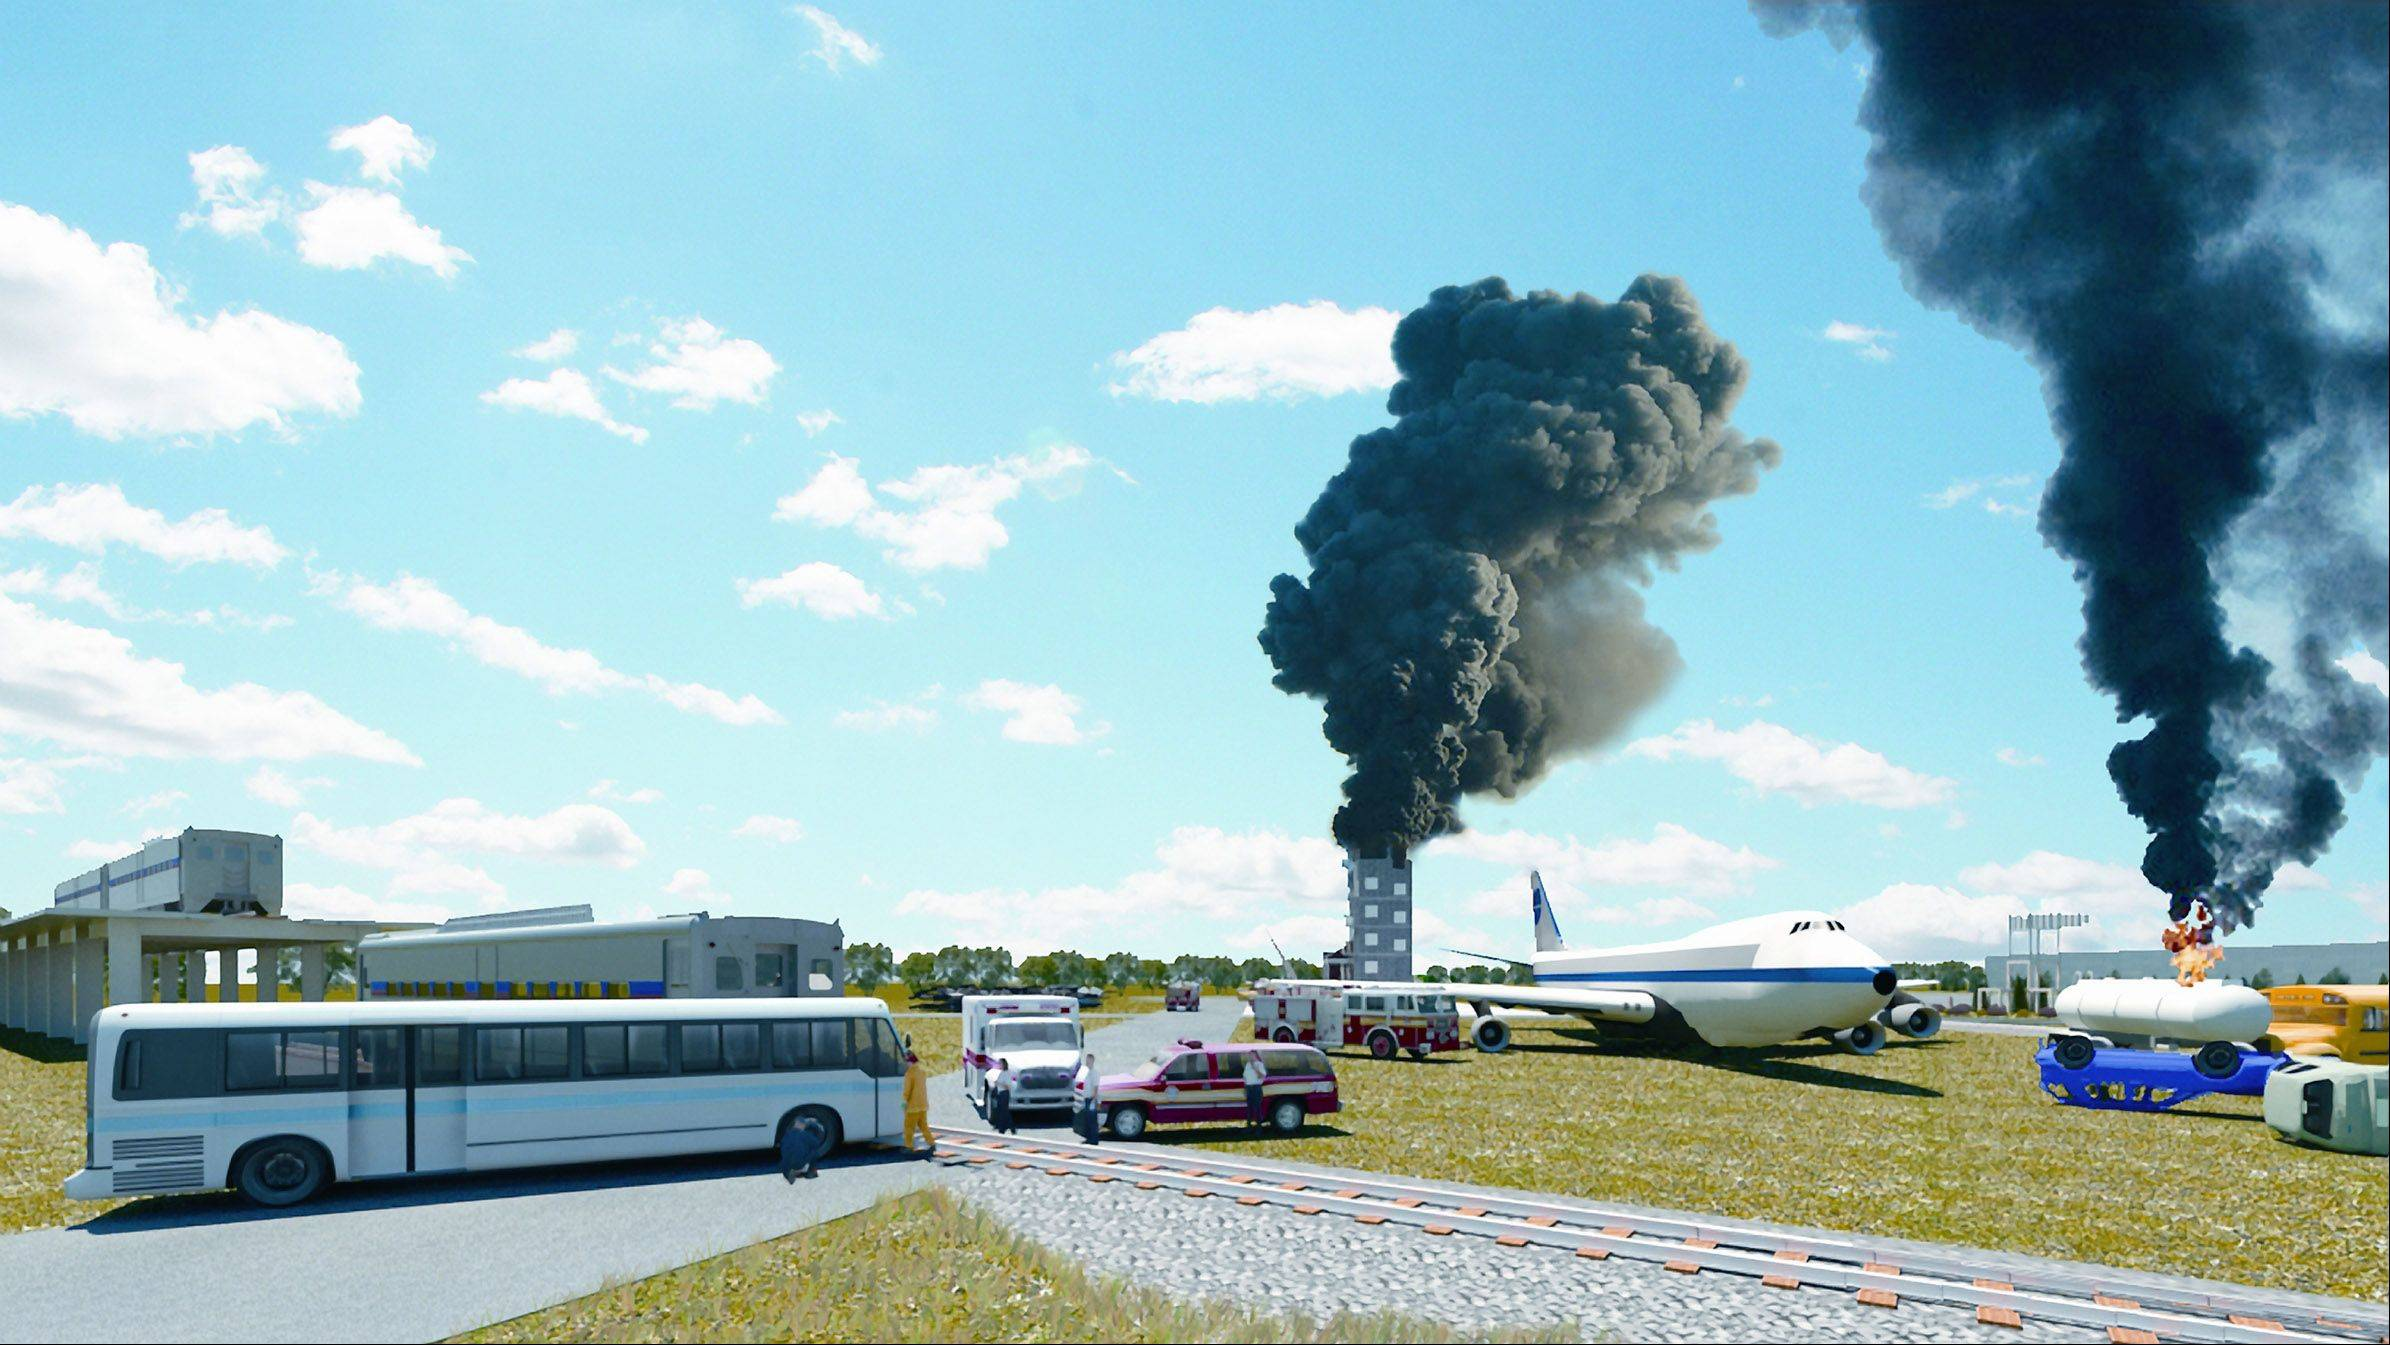 The College of DuPage is in the planning stages for a $50 million to $75 million Midwest Regional Training Center for first responders that would include railroad tracks, a burn tower, an airplane fuselage and hazardous materials tanks.